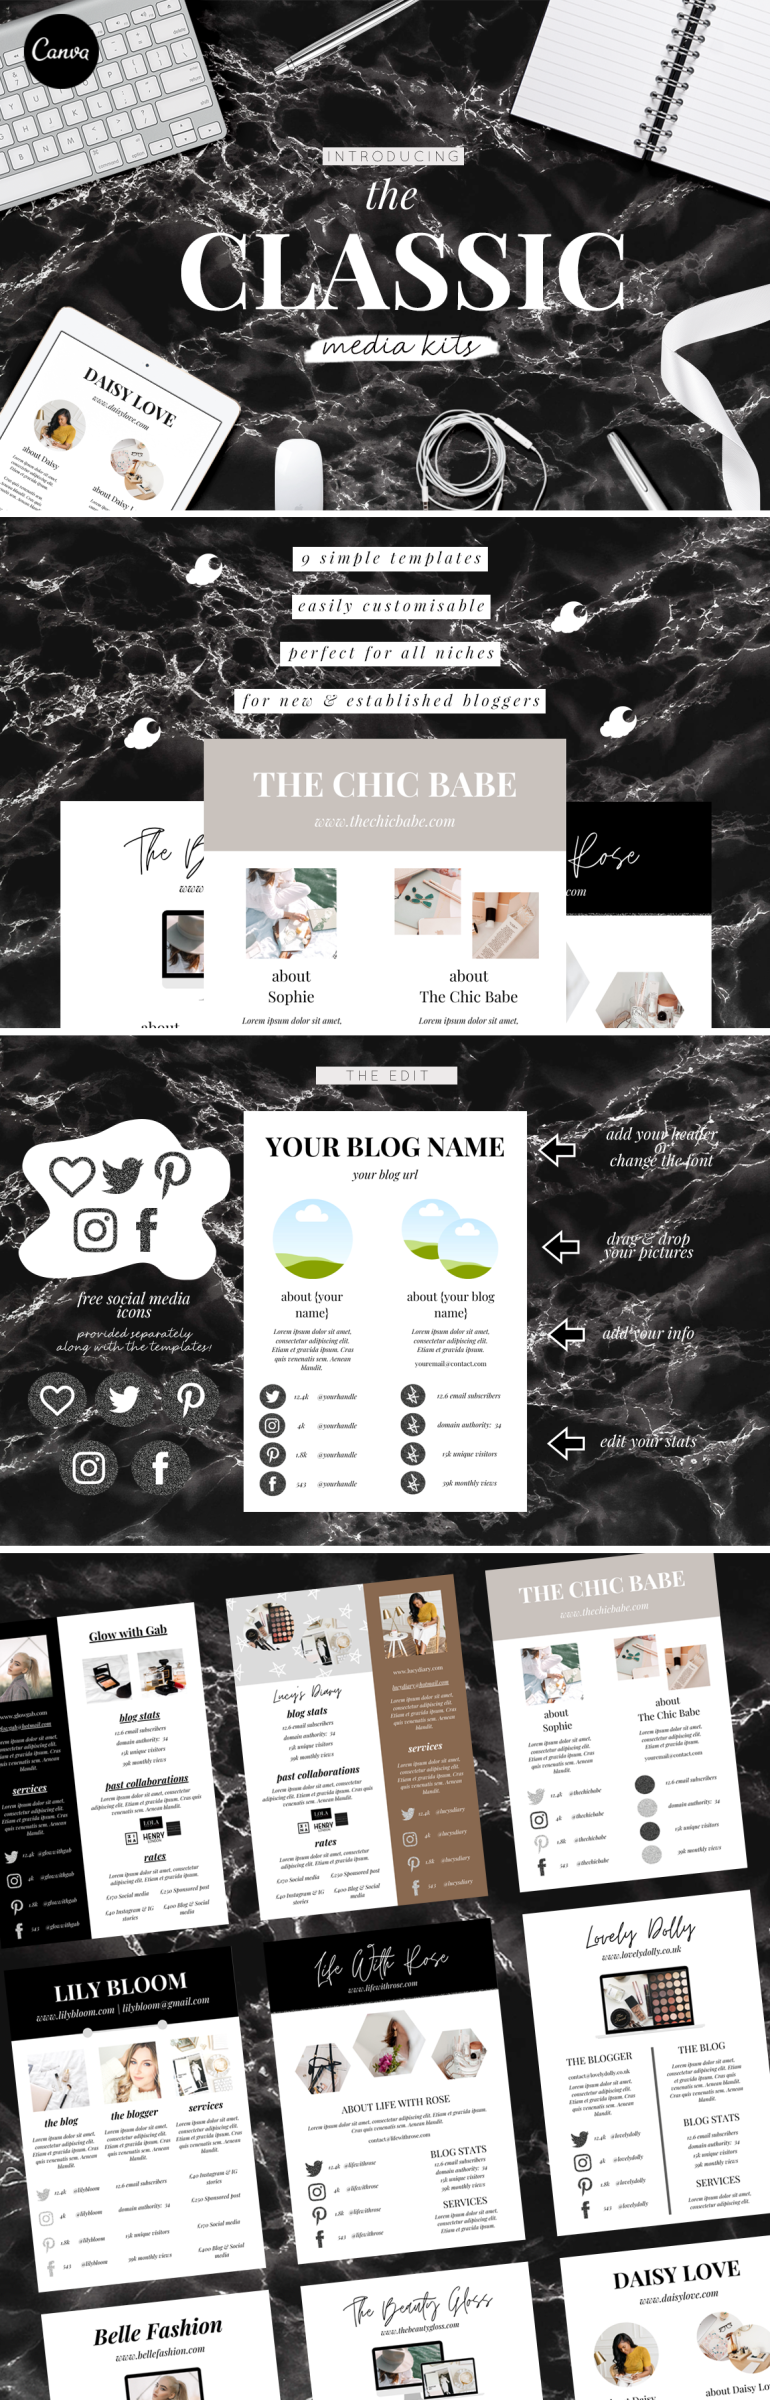 the classic media kits - canva templates - free black glitter social media icons - new lune studio